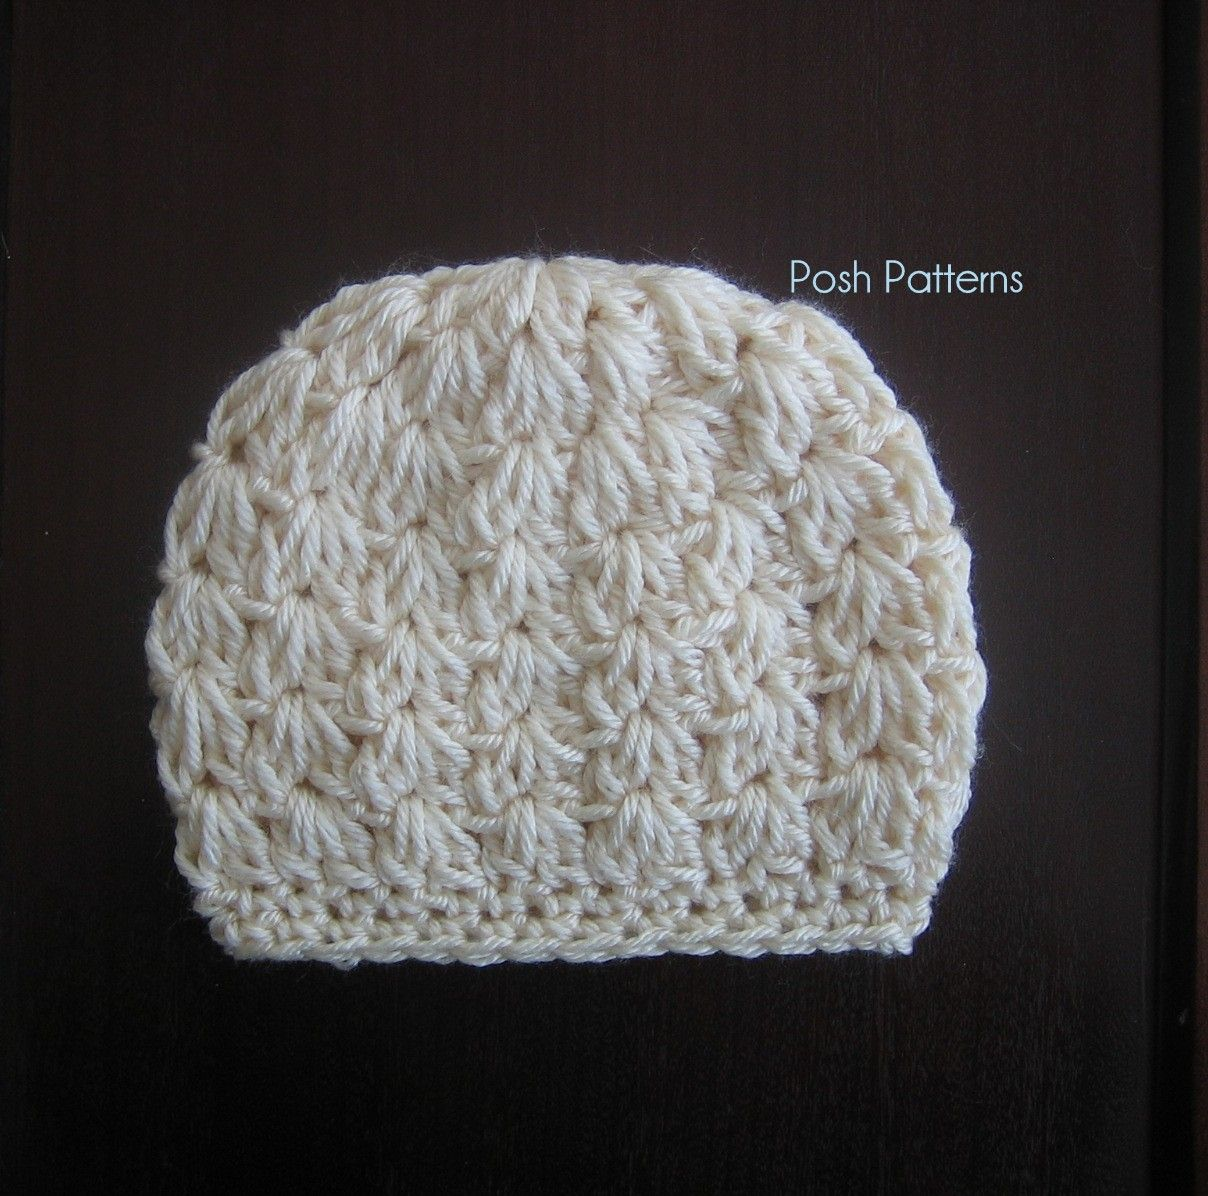 Free Crochet Patterns For A Baby Blanket : Crochet PATTERN - Cluster Shells Crochet Hat Pattern ...